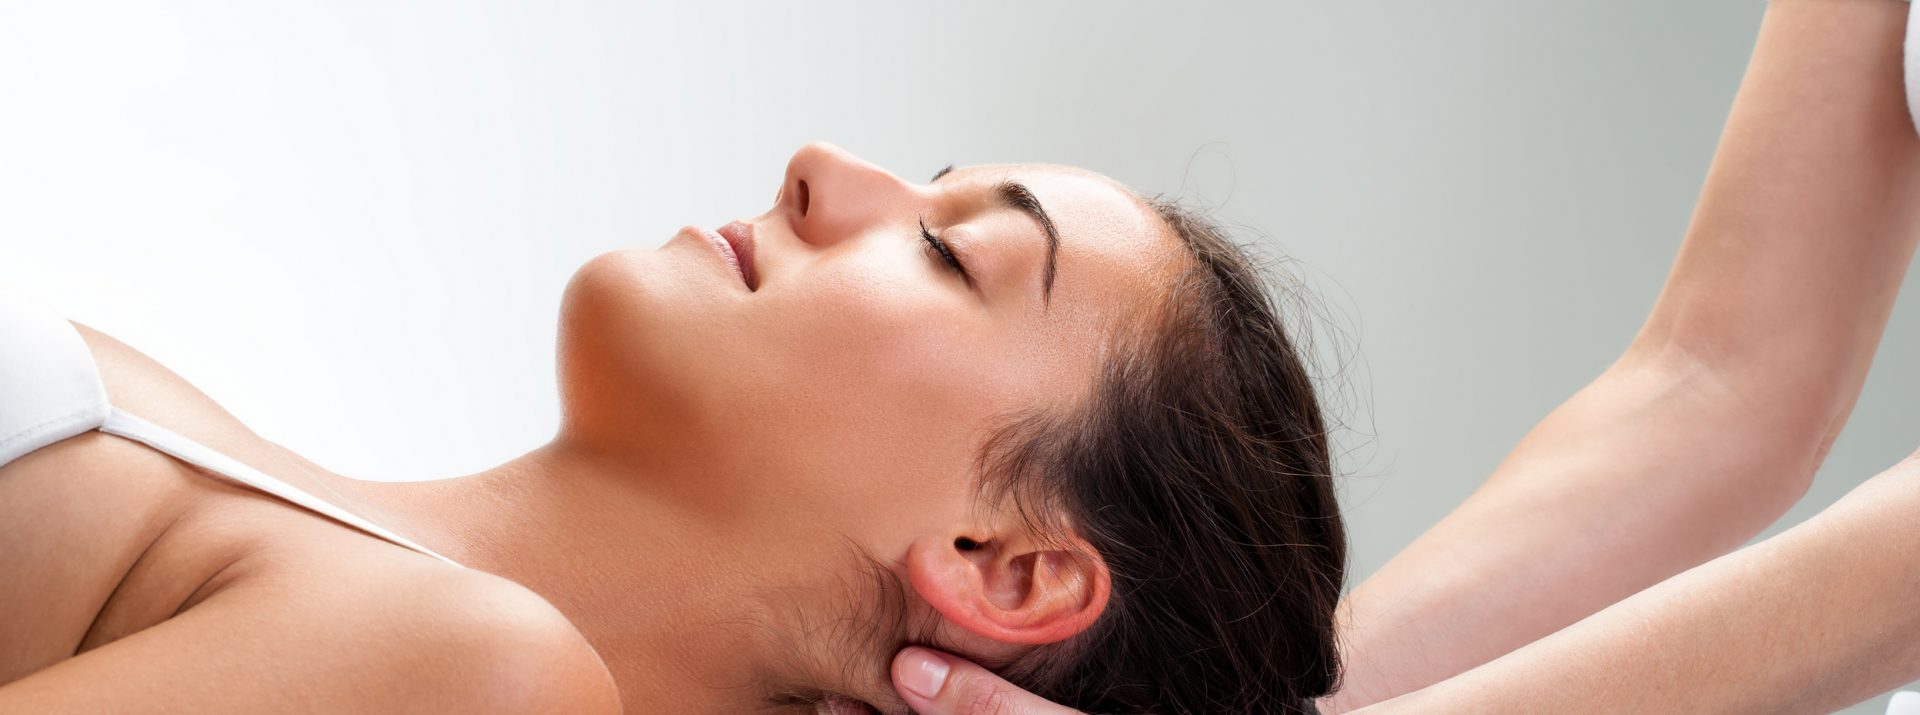 You don't have to be in pain to benefit from chiropractic treatment